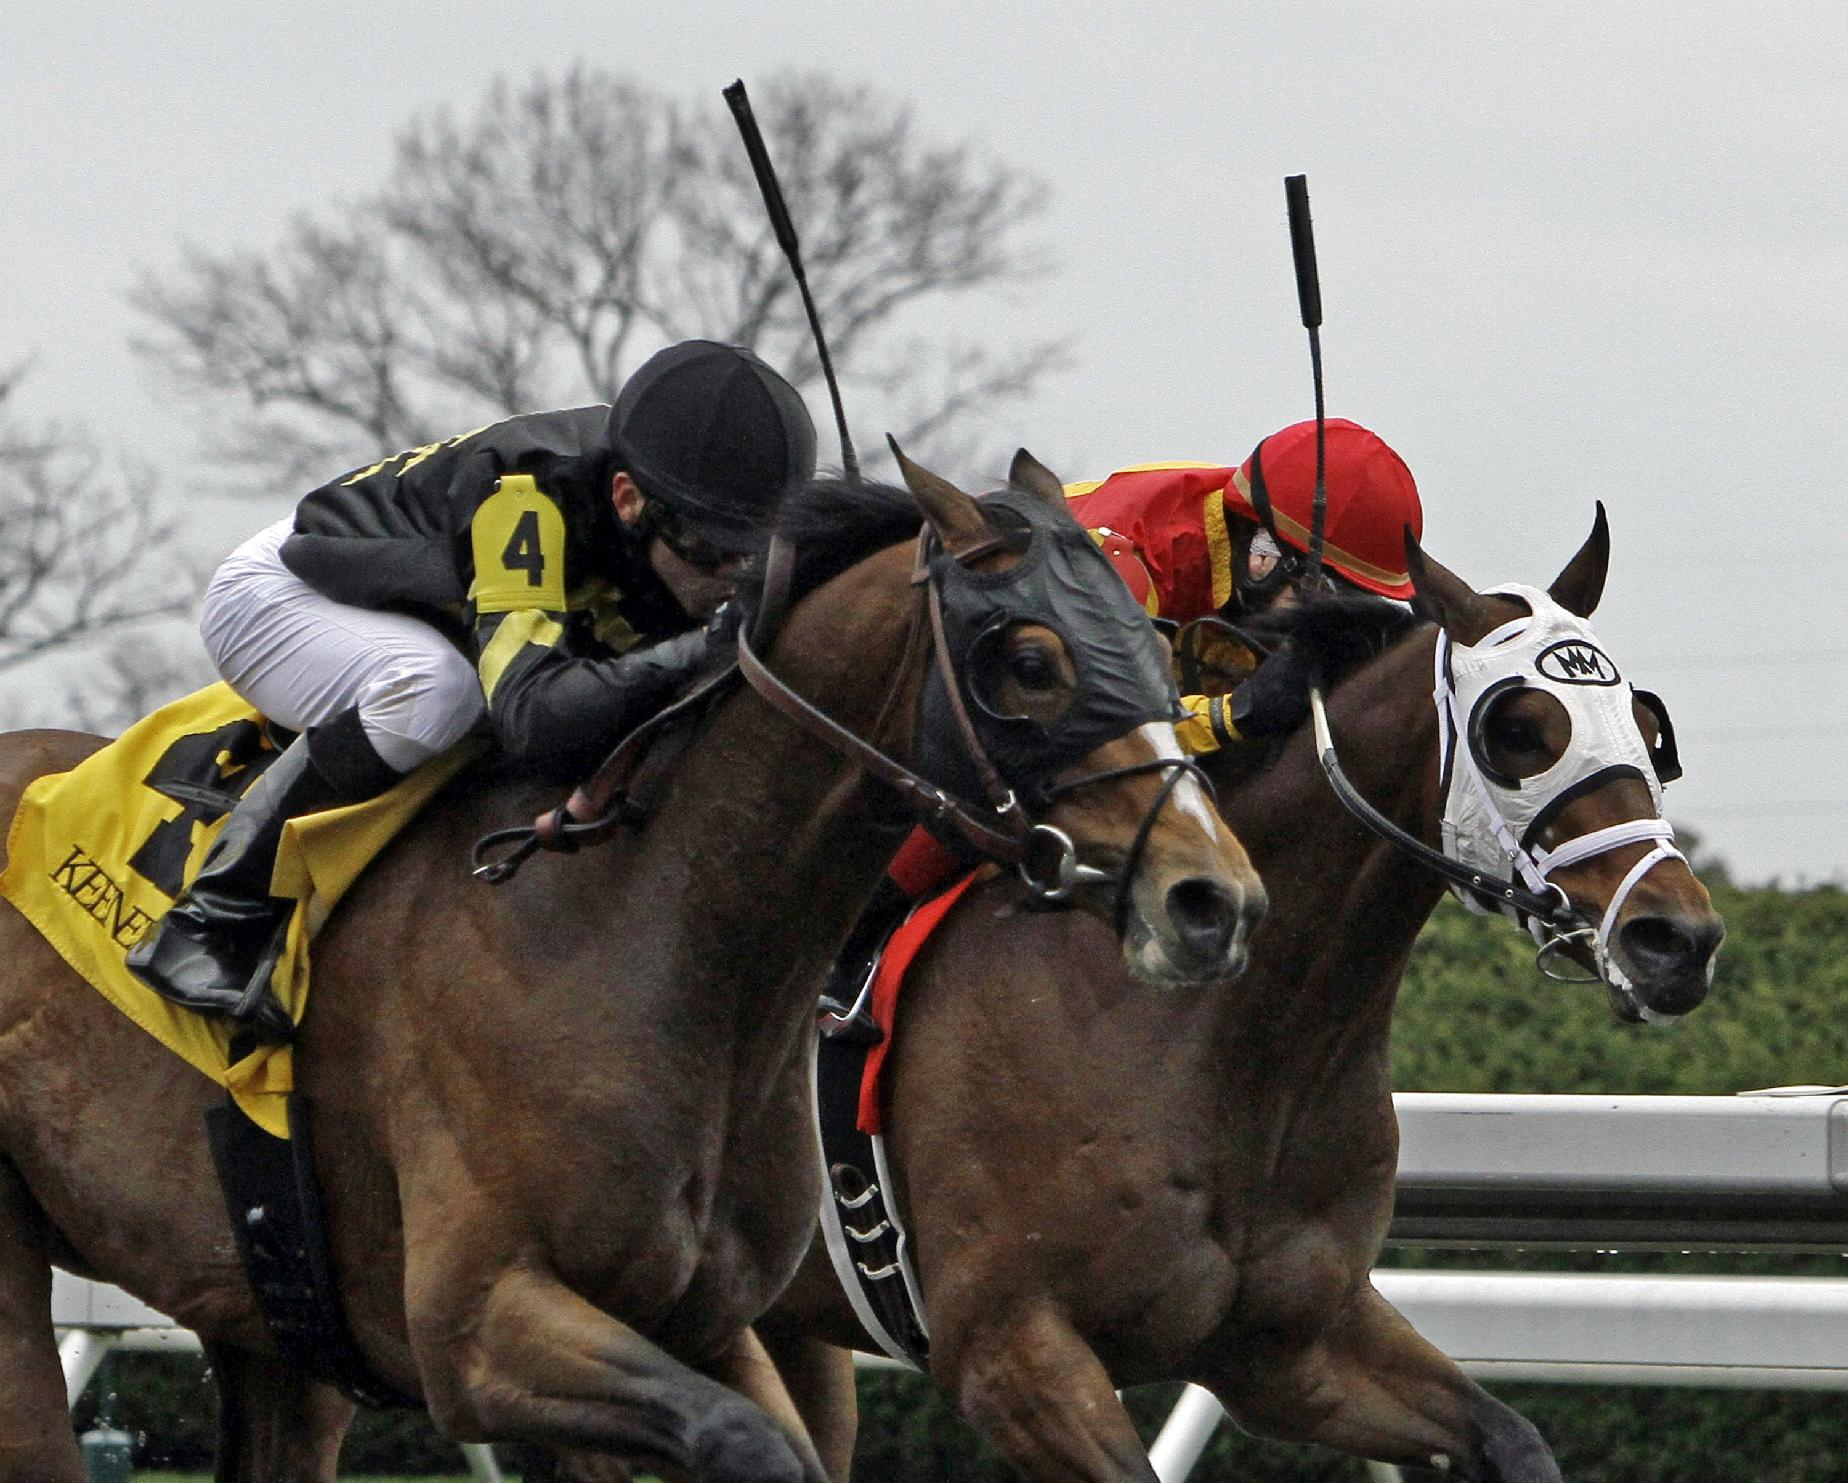 English Council, left, under jockey Marcelino Pedroza, beats Cantonic, right, ridden by Rosie Napravnik to win the first horse race on opening day at Keeneland in Lexington, Ky., Friday, April 4, 2014